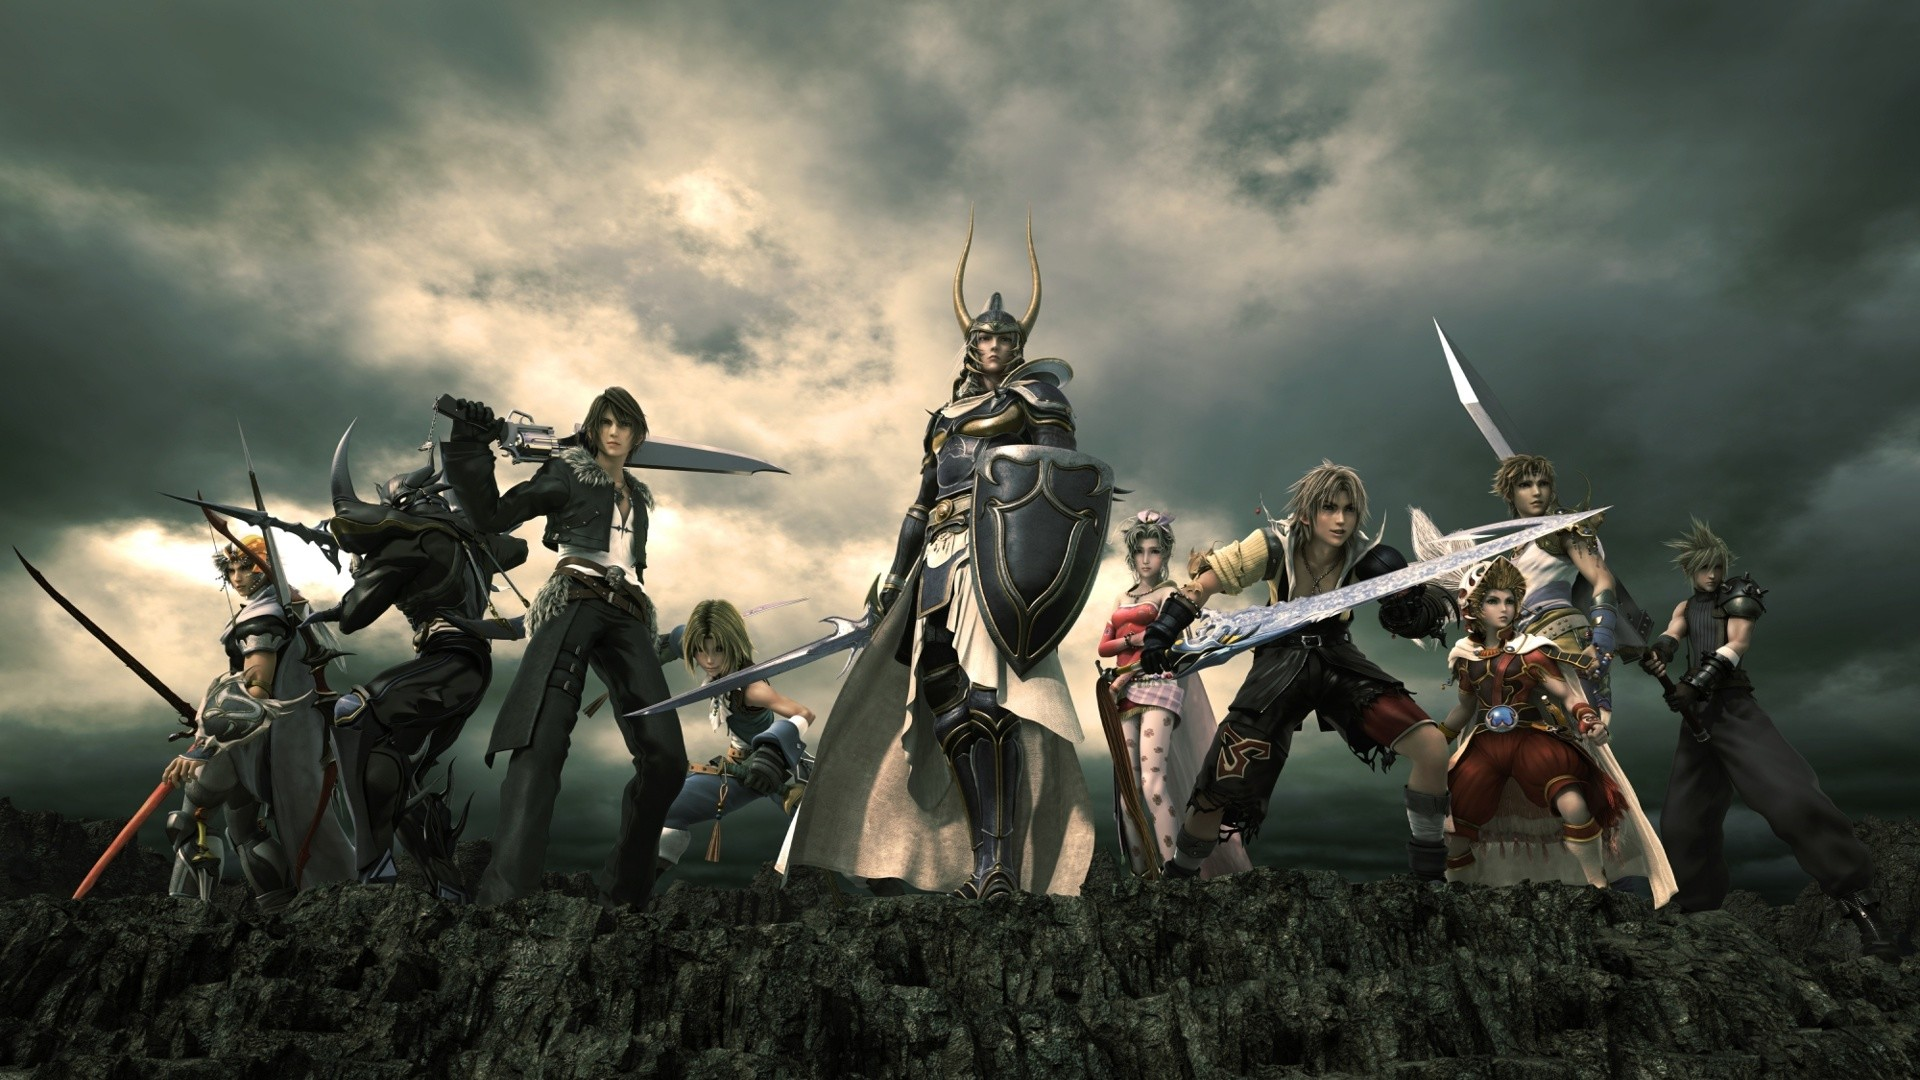 Final Fantasy HD Wallpapers Wallpapers Pictures